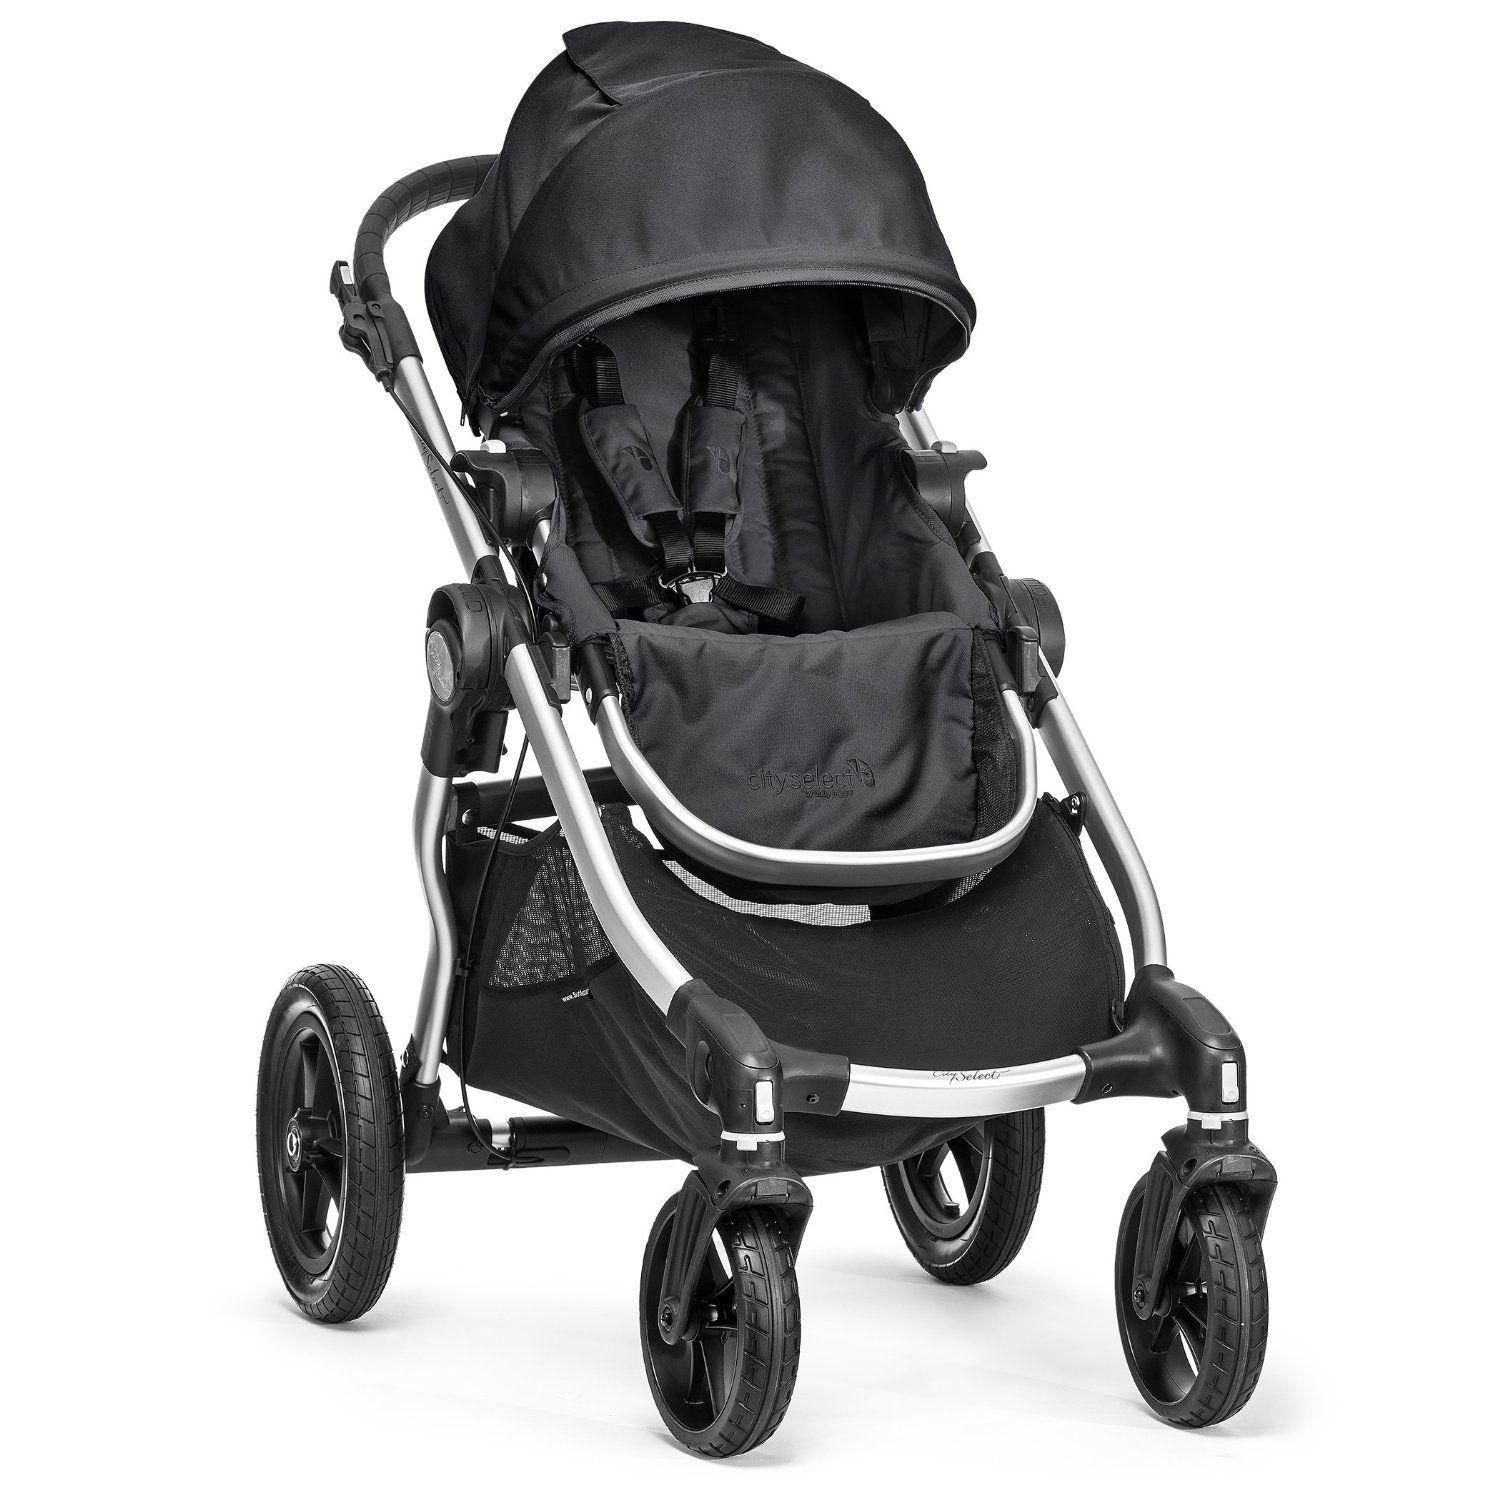 Looking for the Best Double Stroller? Check our Mountain